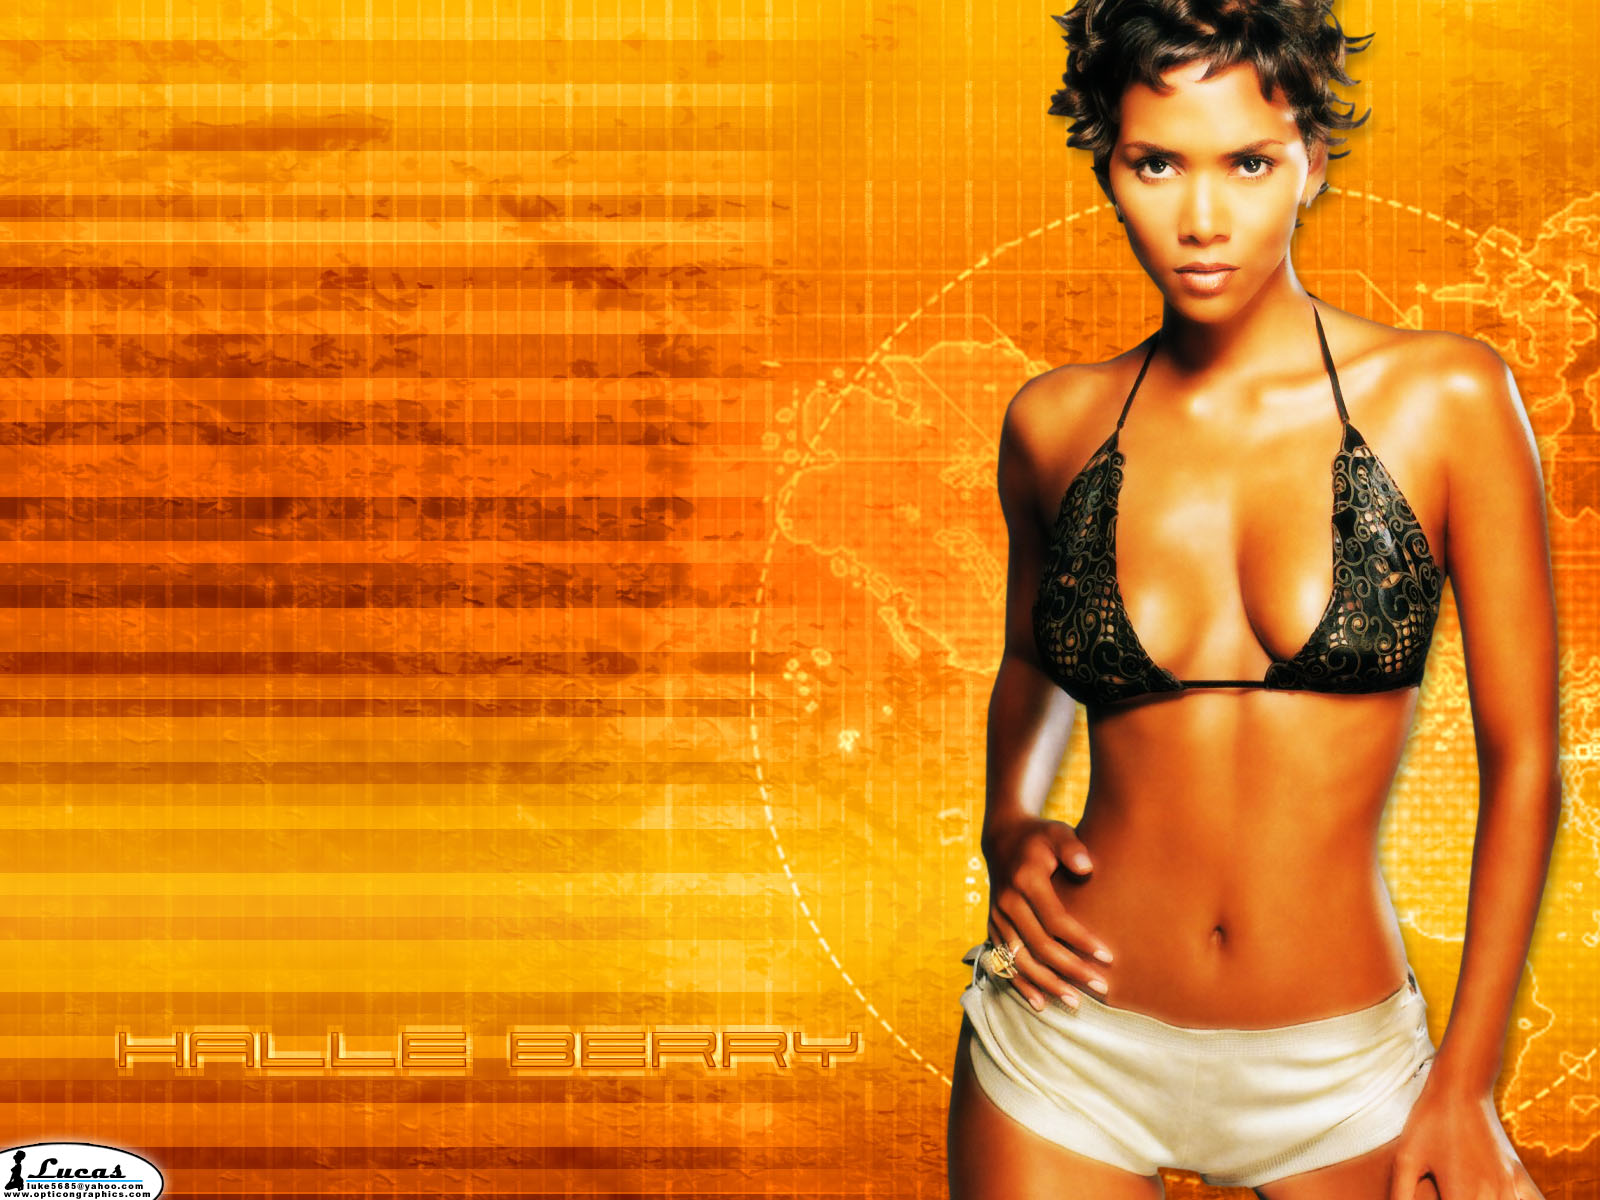 Girls Breast Wallpaper Halle Berry Halle Berry Hot Wallpapers